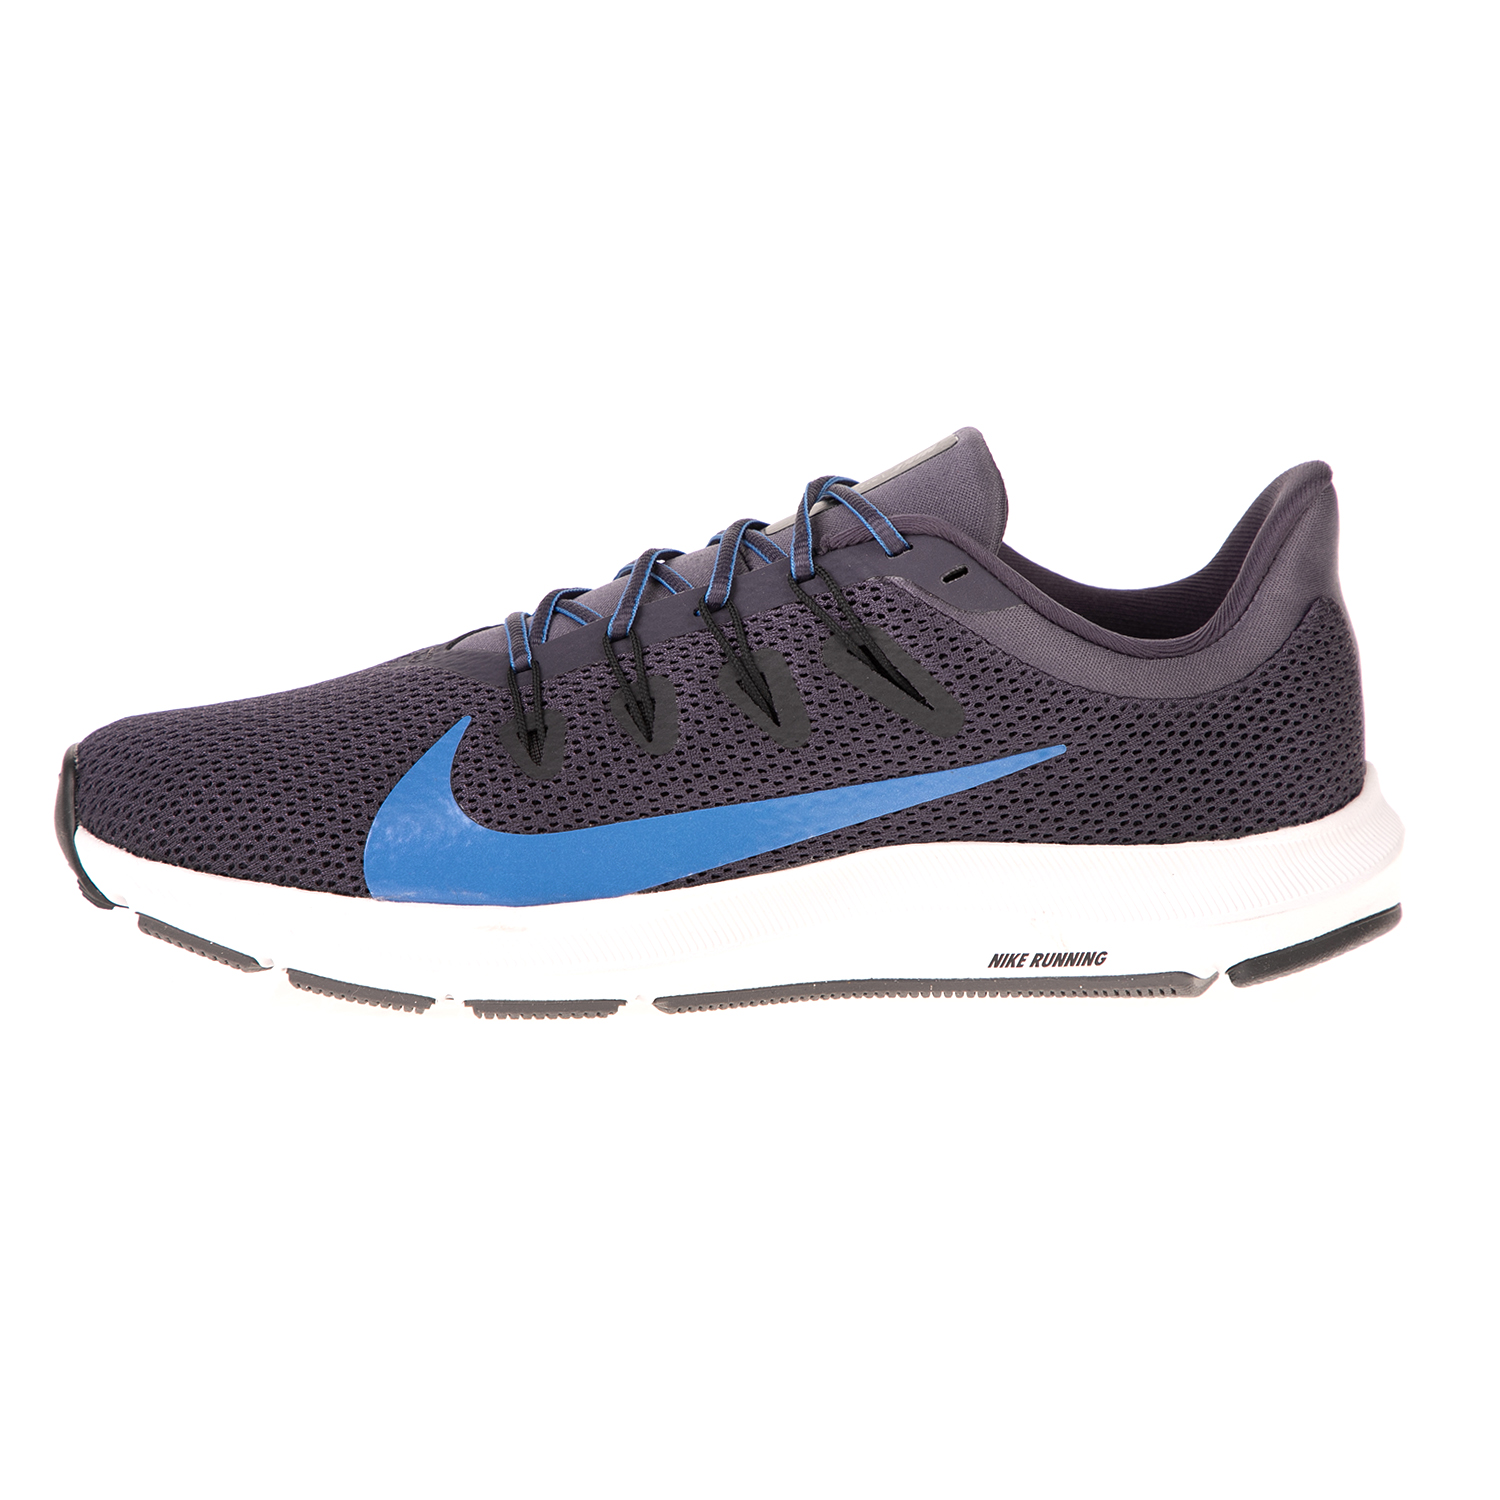 NIKE – Ανδρικά παπούτσια running NIKE QUEST 2 μαύρα